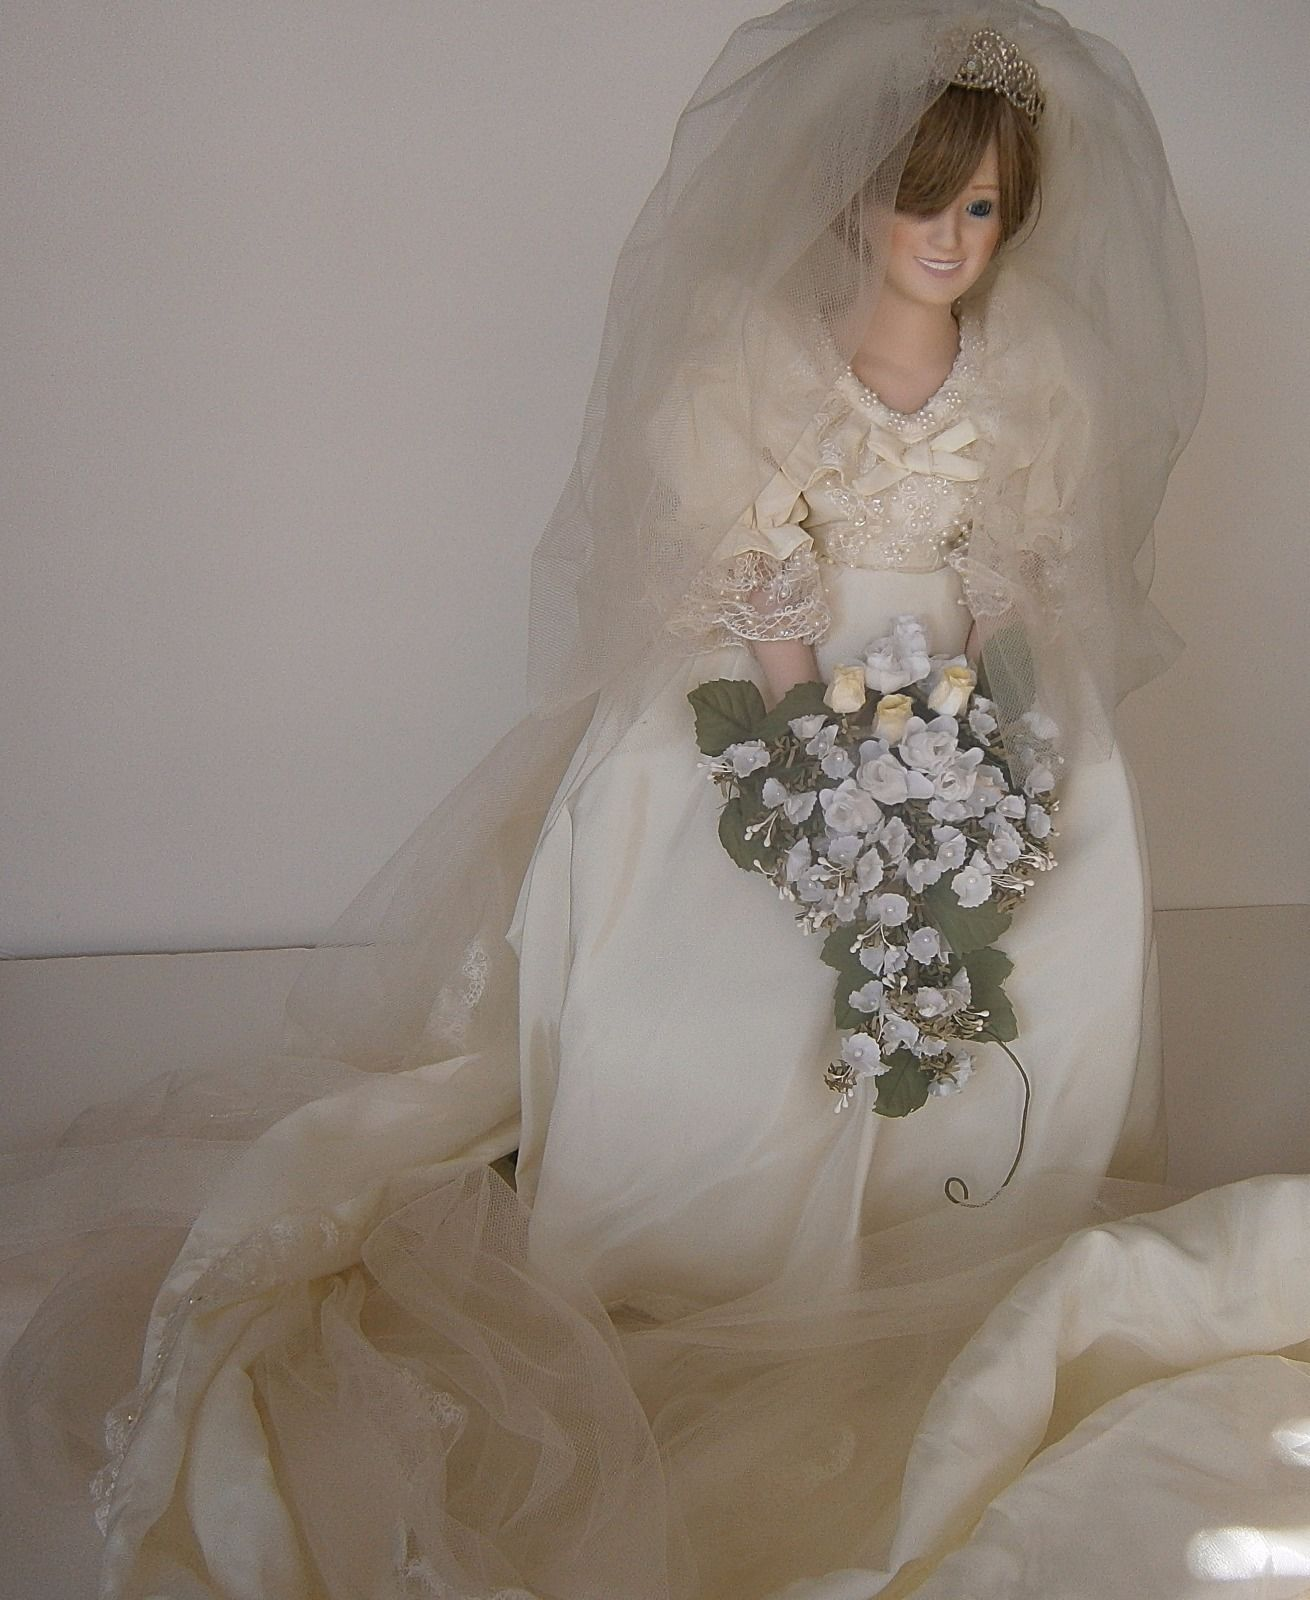 The Princess Diana Bride Doll by Danbury Mint